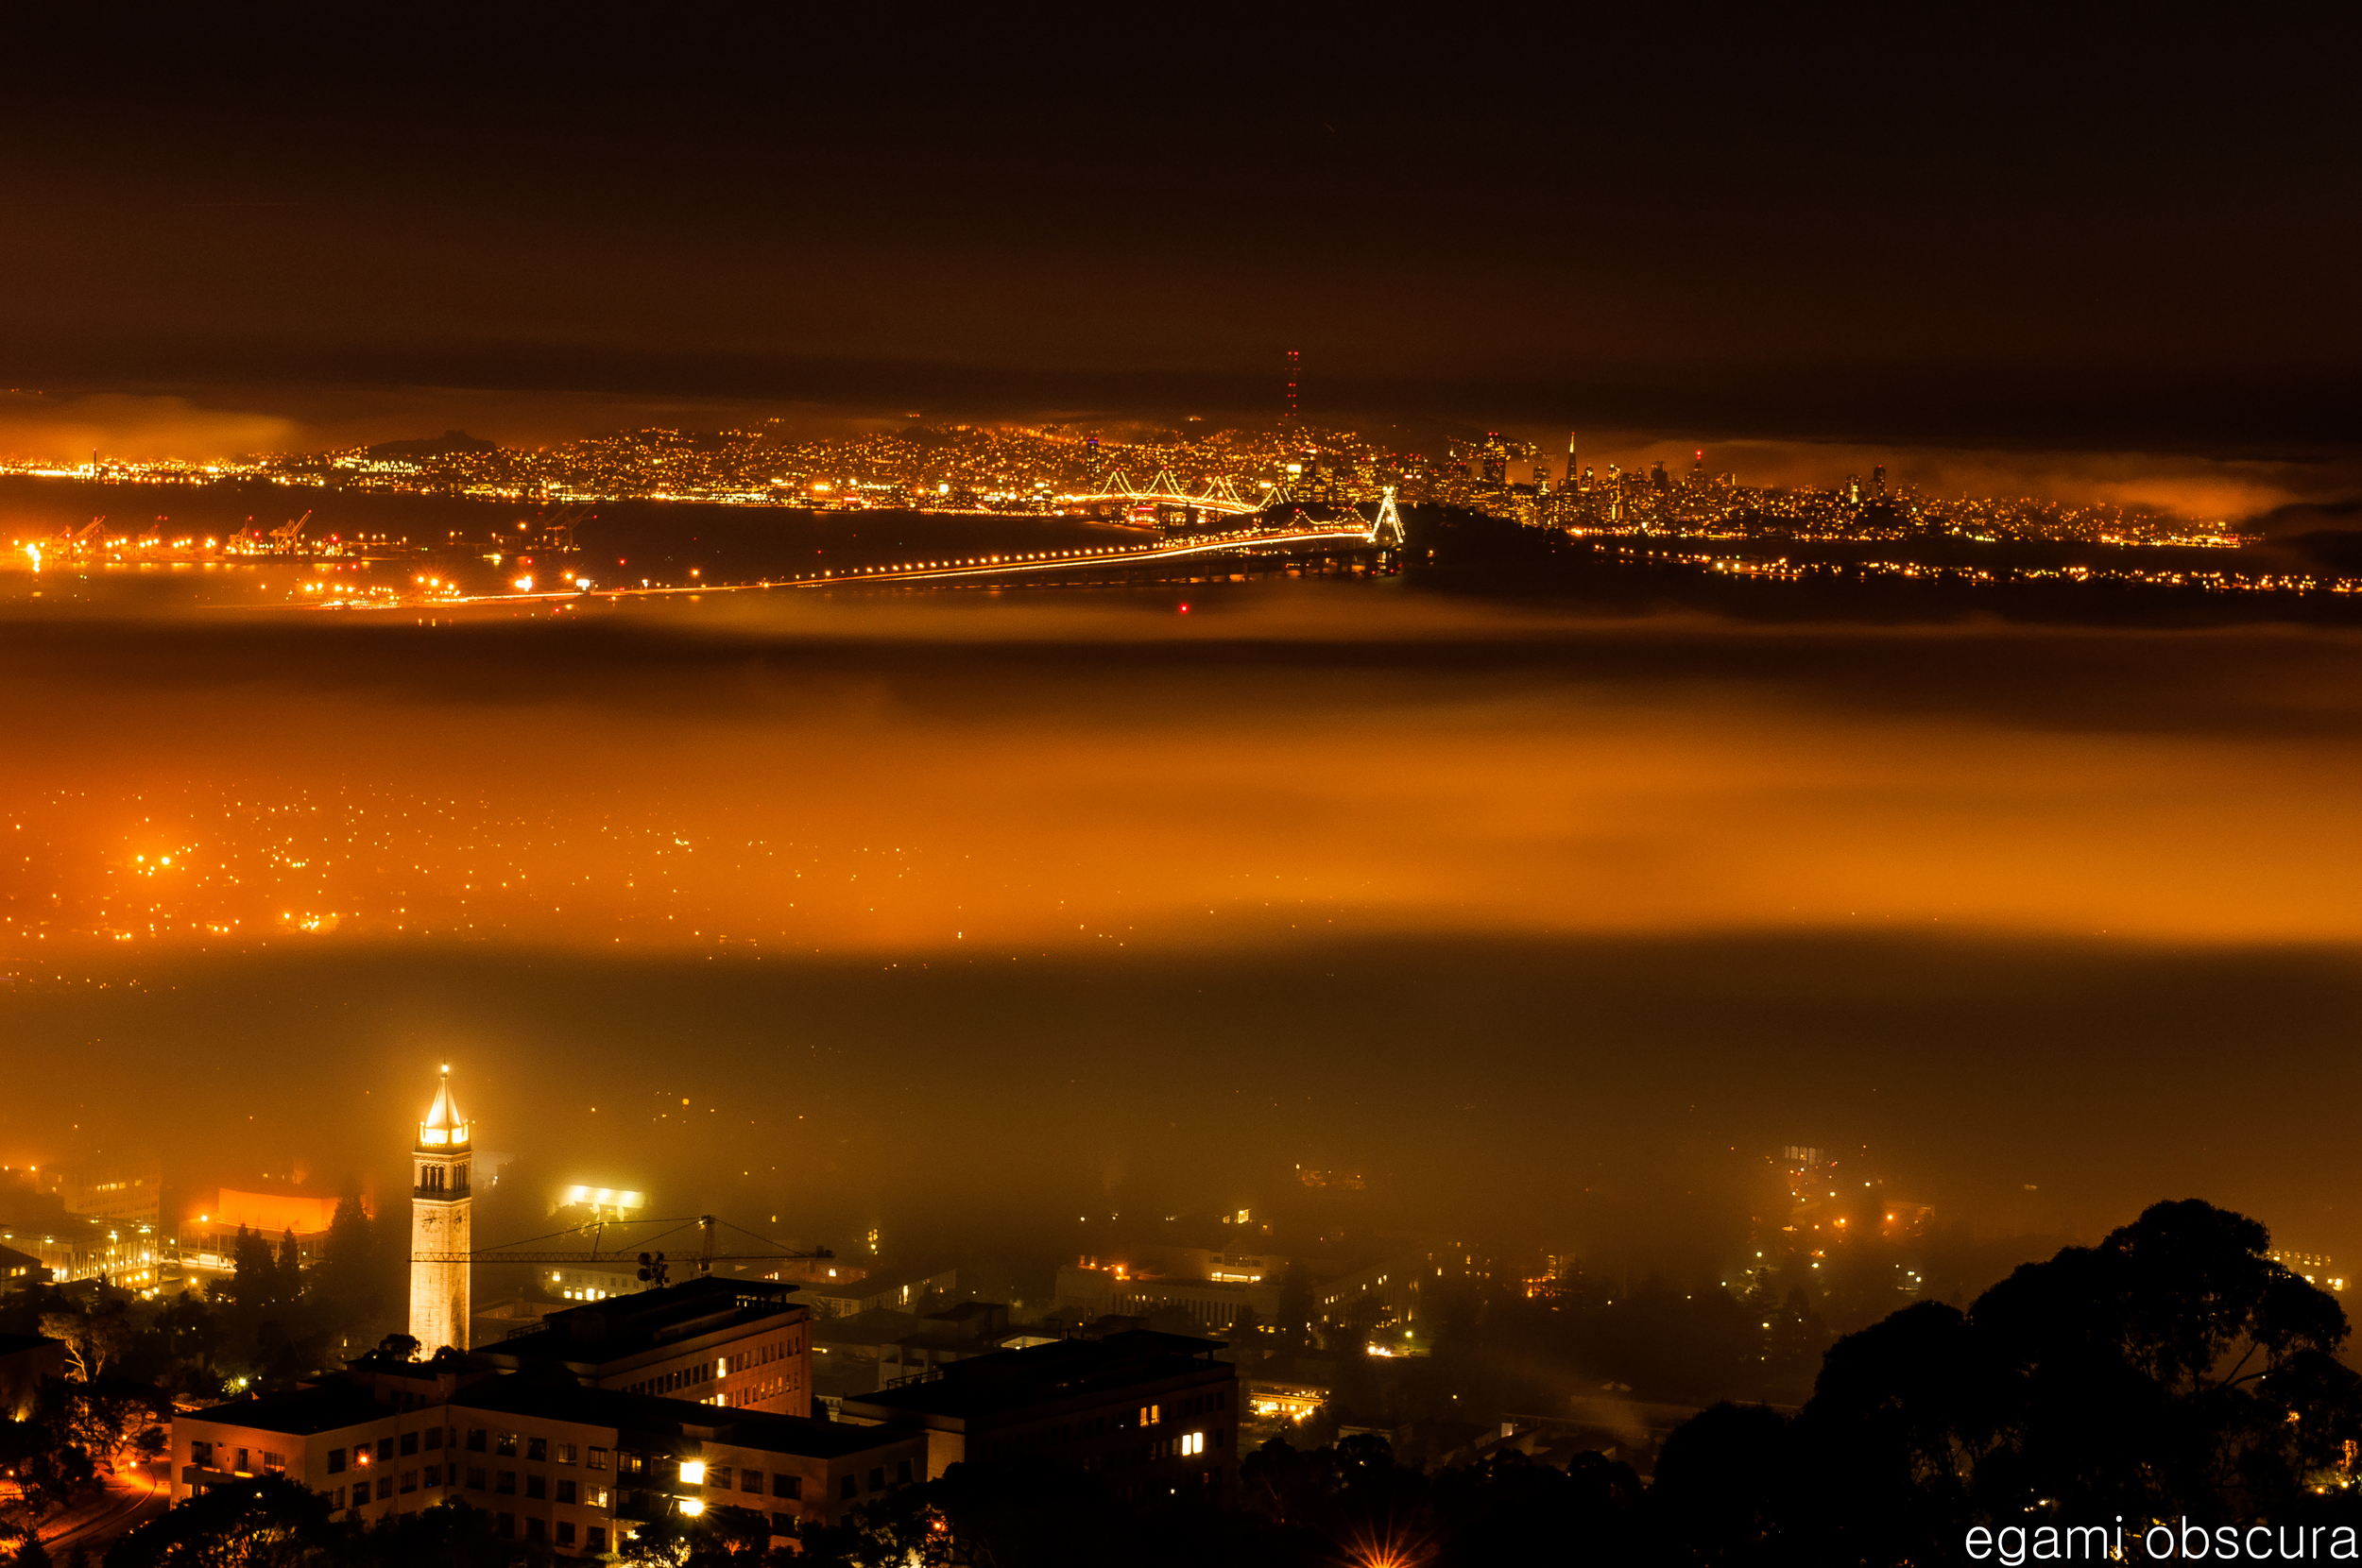 Fiat Lux and the Fog